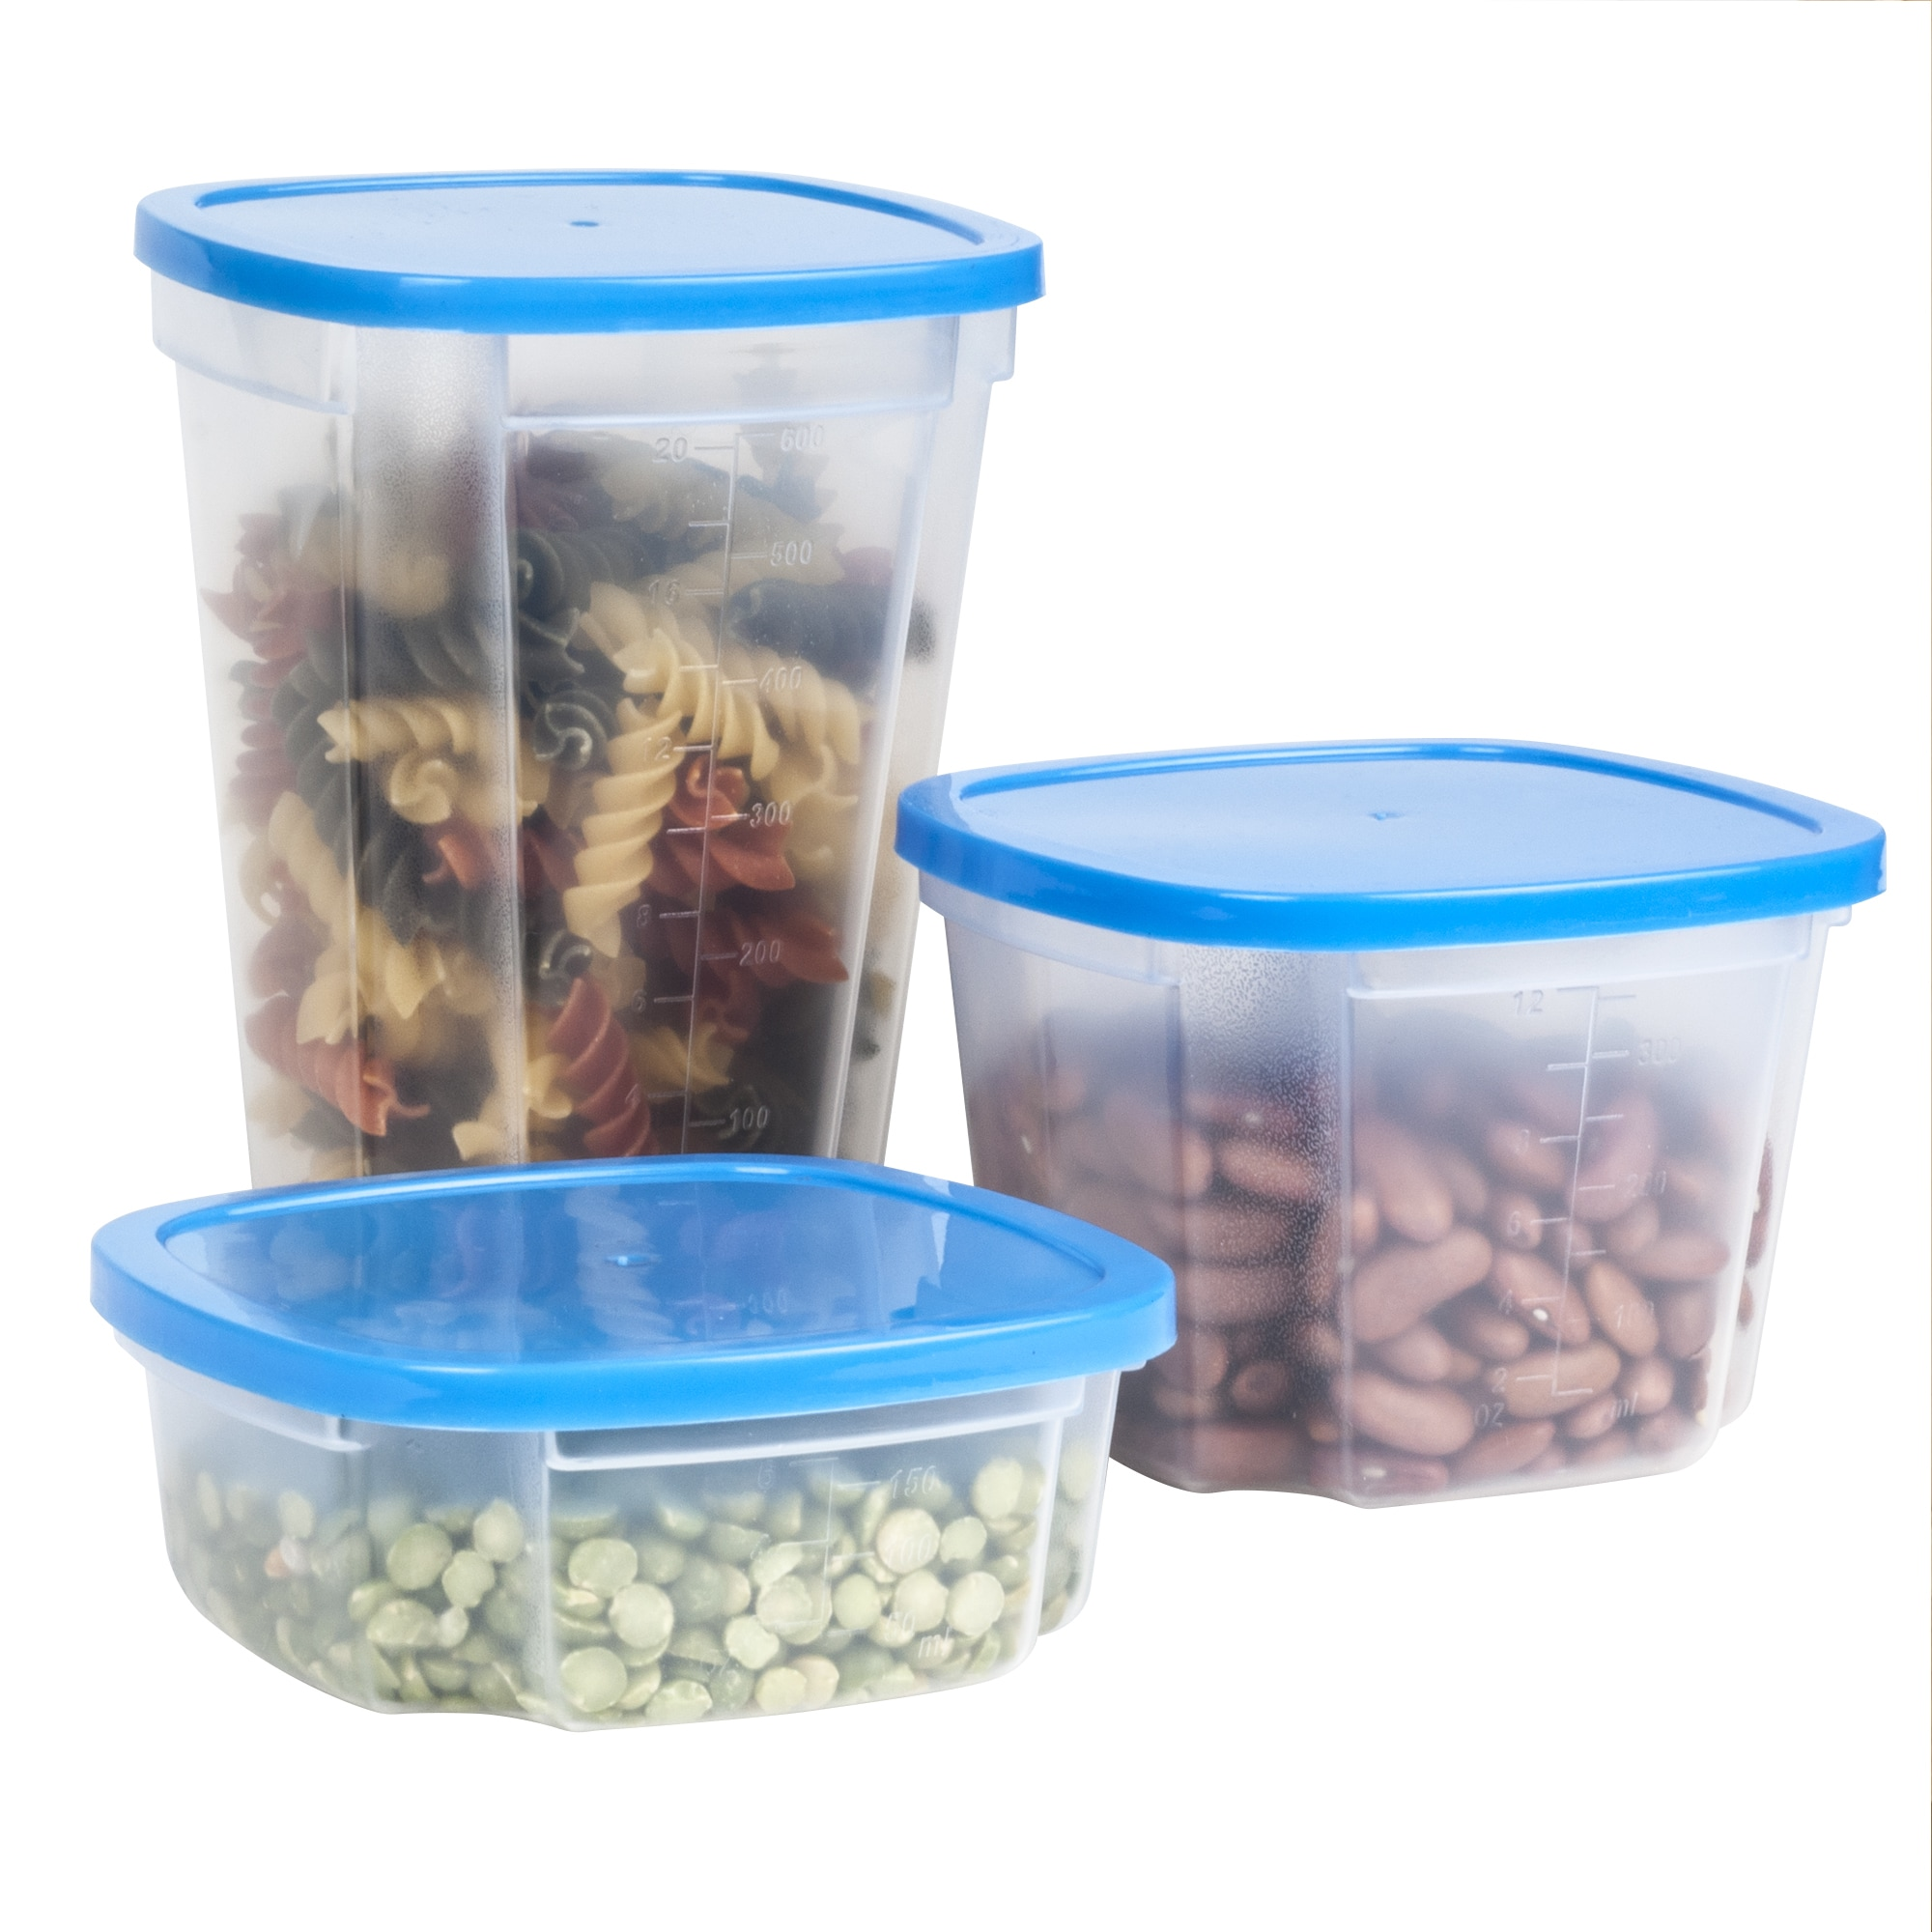 Shop Chef Buddy Swirl Around 49 PC Food Storage Organizer - On Sale - Free Shipping On Orders Over $45 - Overstock.com - 13925897  sc 1 st  Overstock.com & Shop Chef Buddy Swirl Around 49 PC Food Storage Organizer - On Sale ...